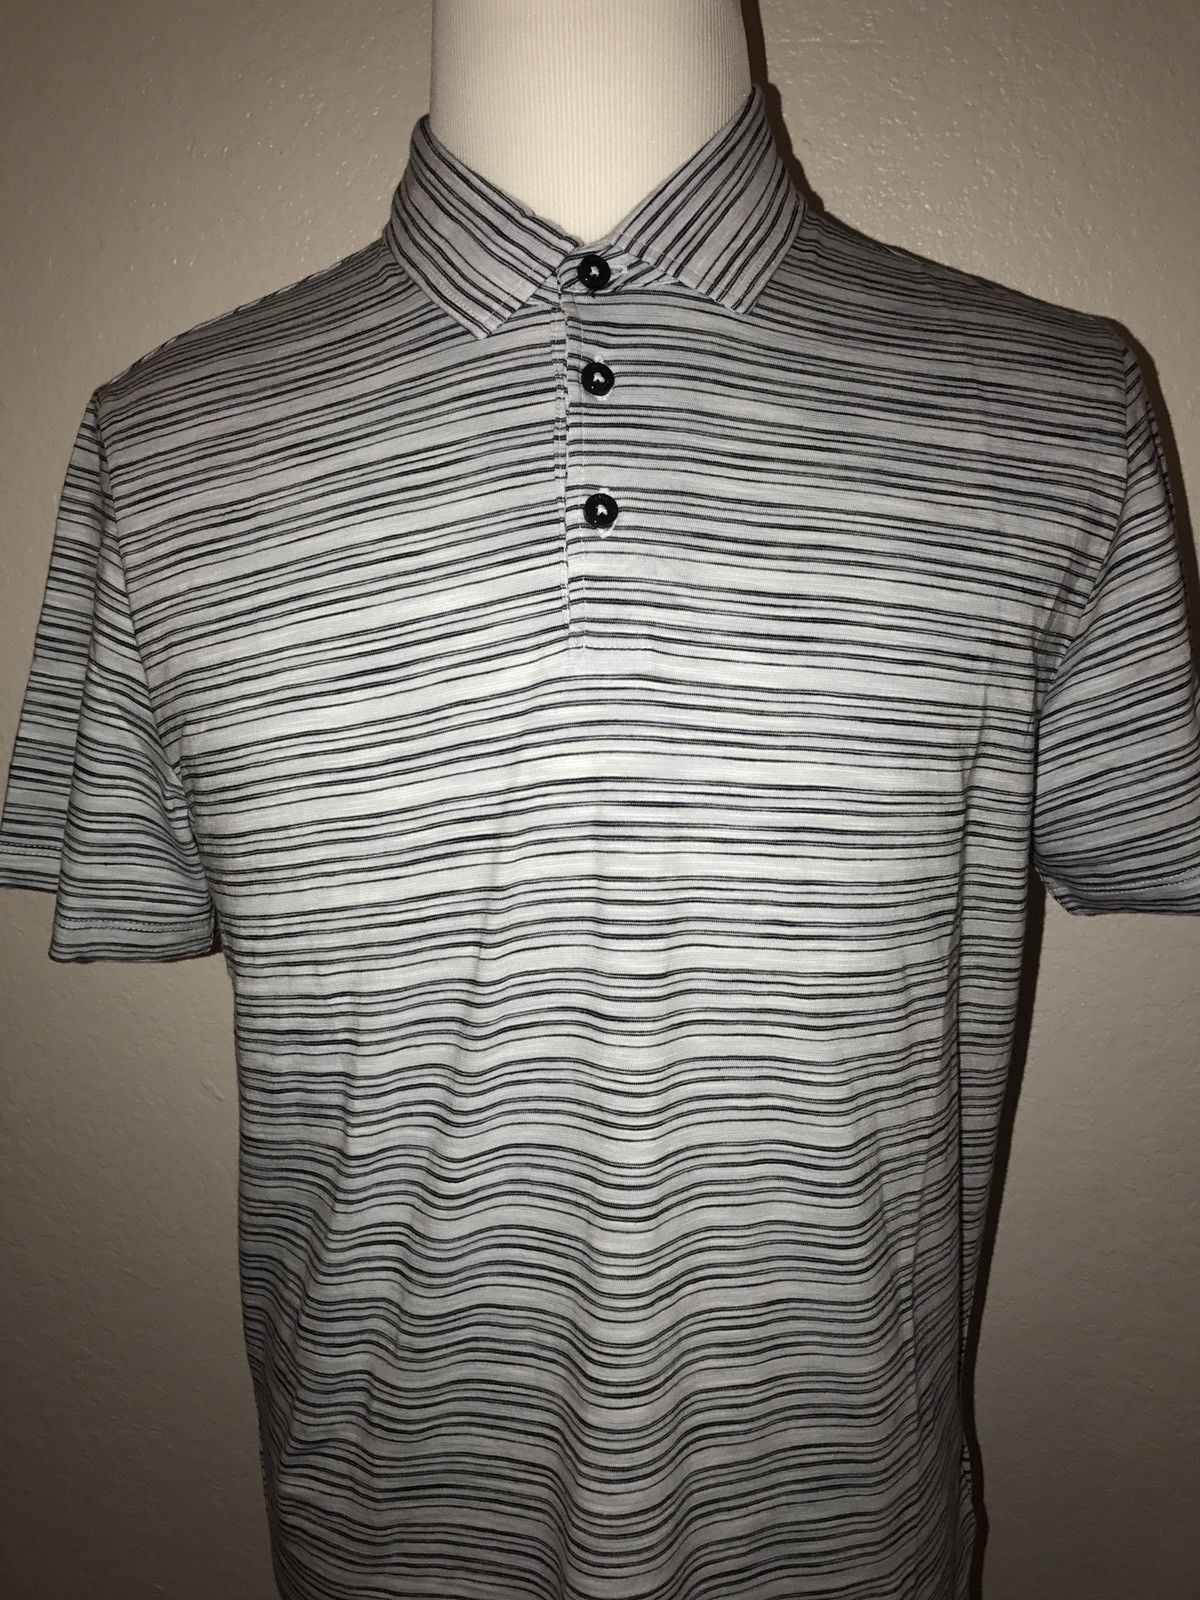 New $118 BOSS Hugo Boss Short Sleeve Regular Fit Striped Polo Shirt L